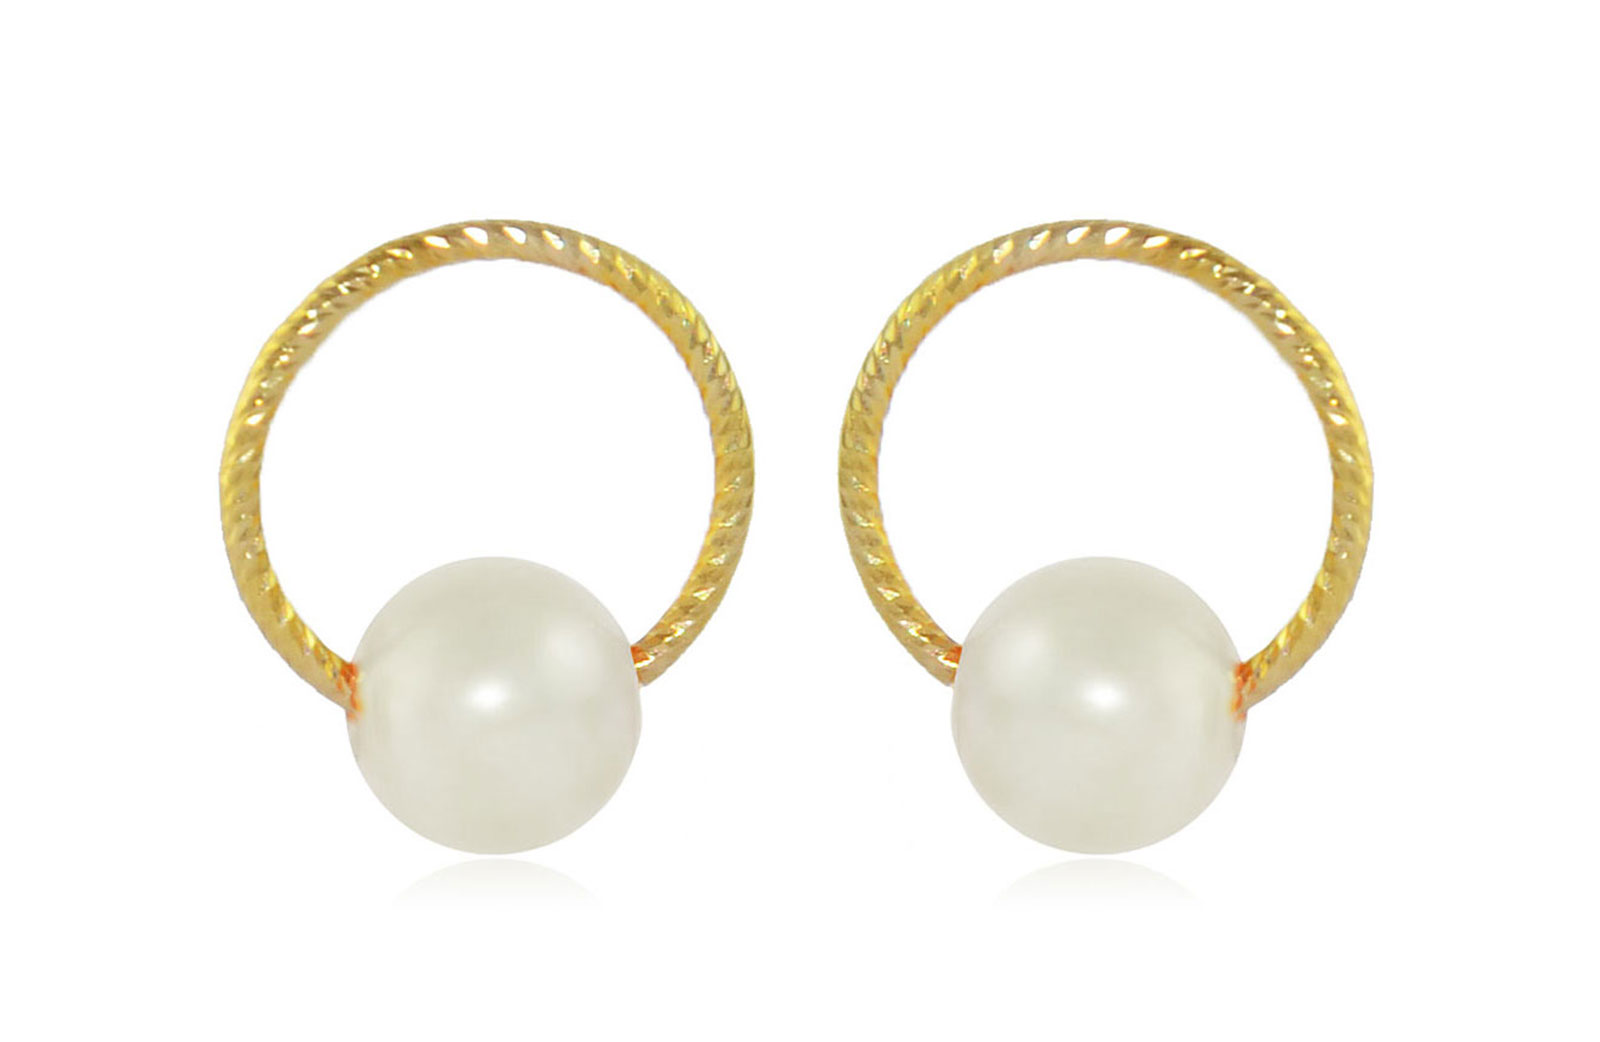 Vera Perla 10k Gold, Delicate 7mm White Round Pearl Hoop Earrings